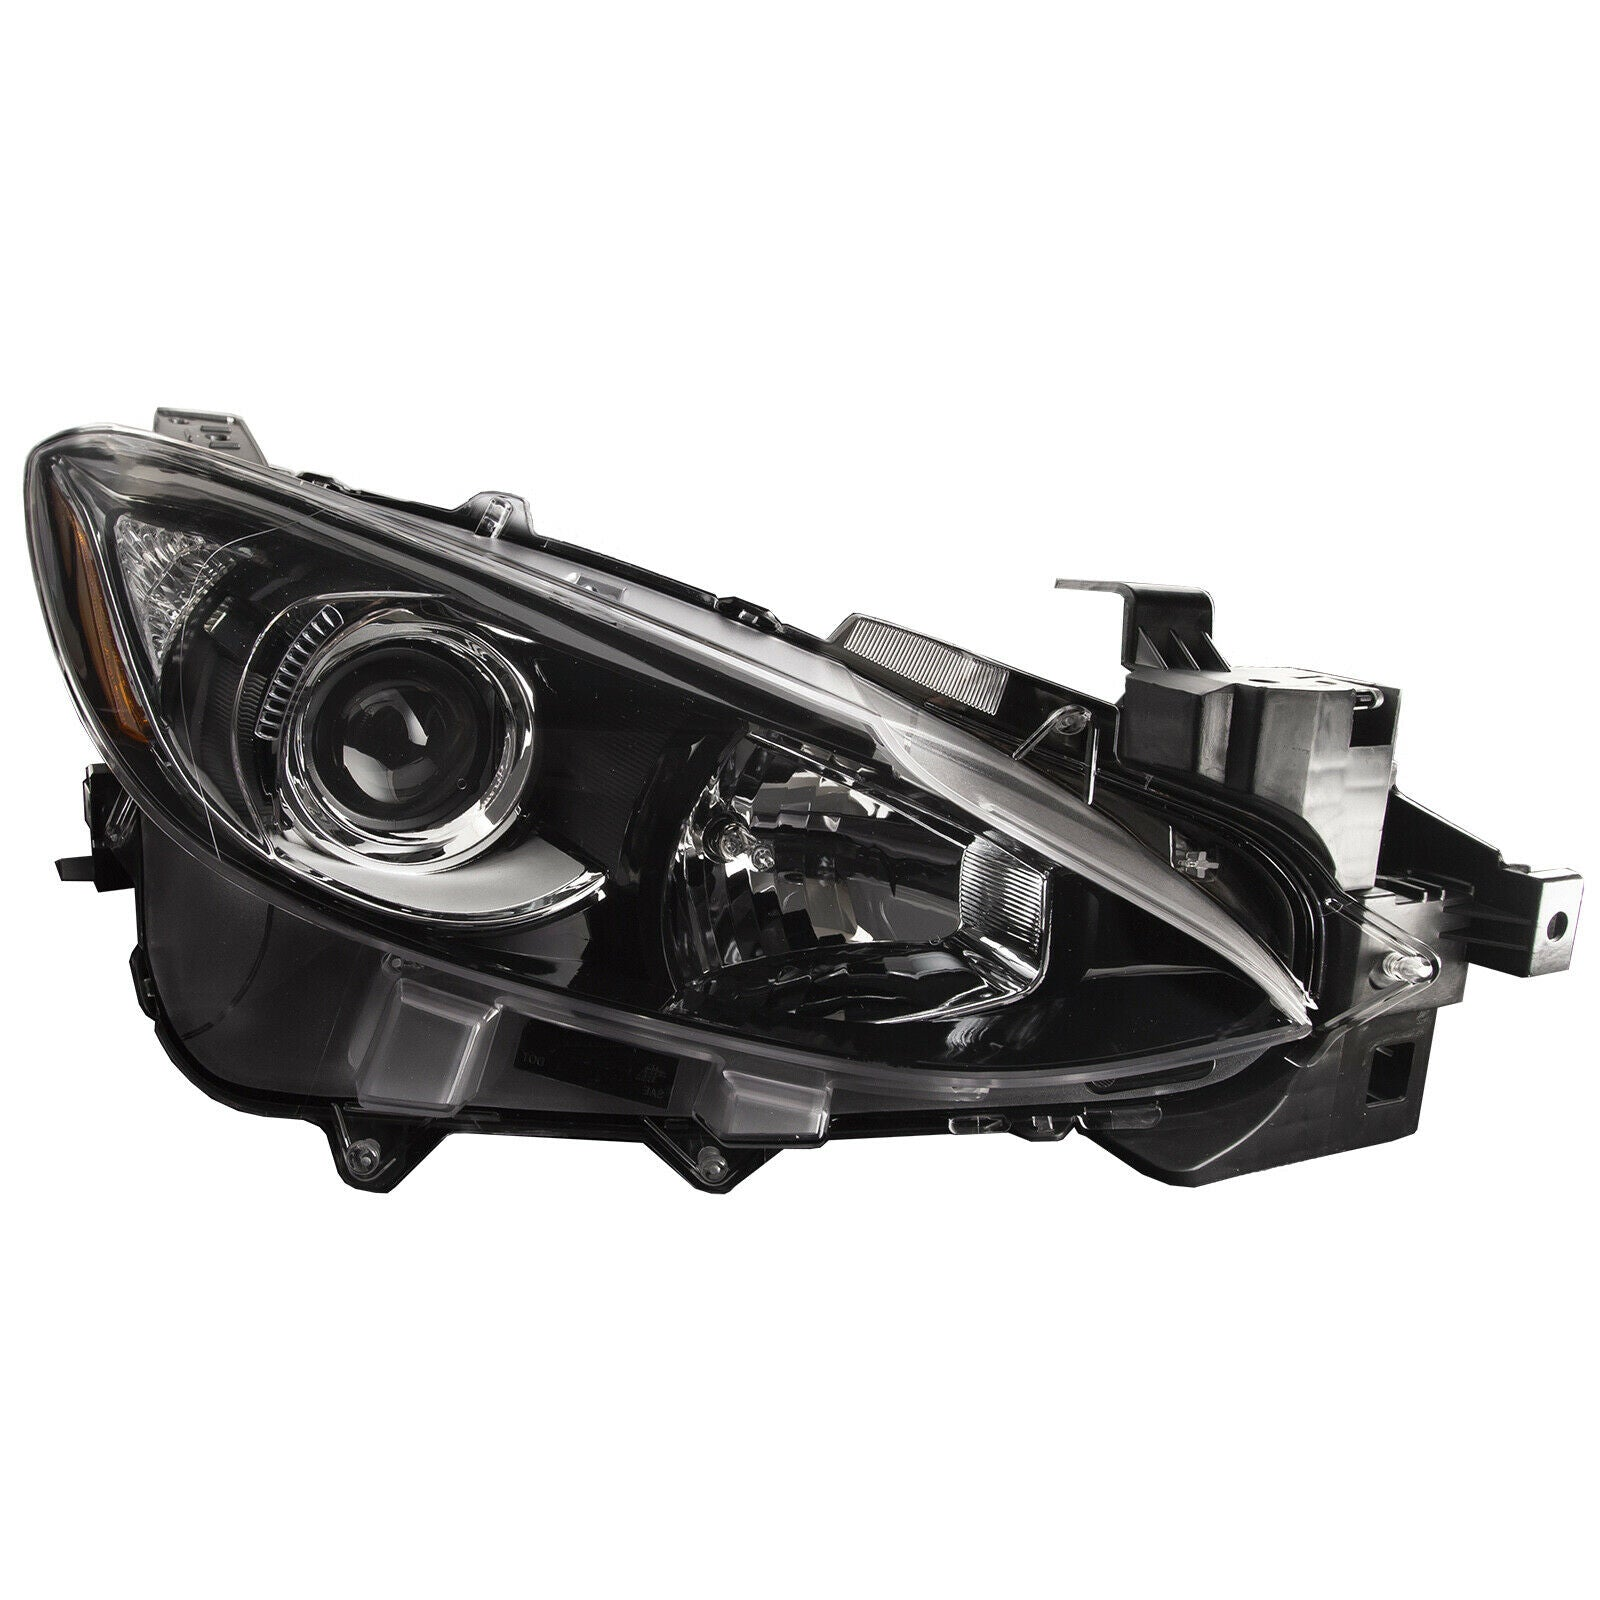 Headlight Halogen Black Housing Right CAPA Fits 2014-2016 Mazda 3 Sedan/Hatch